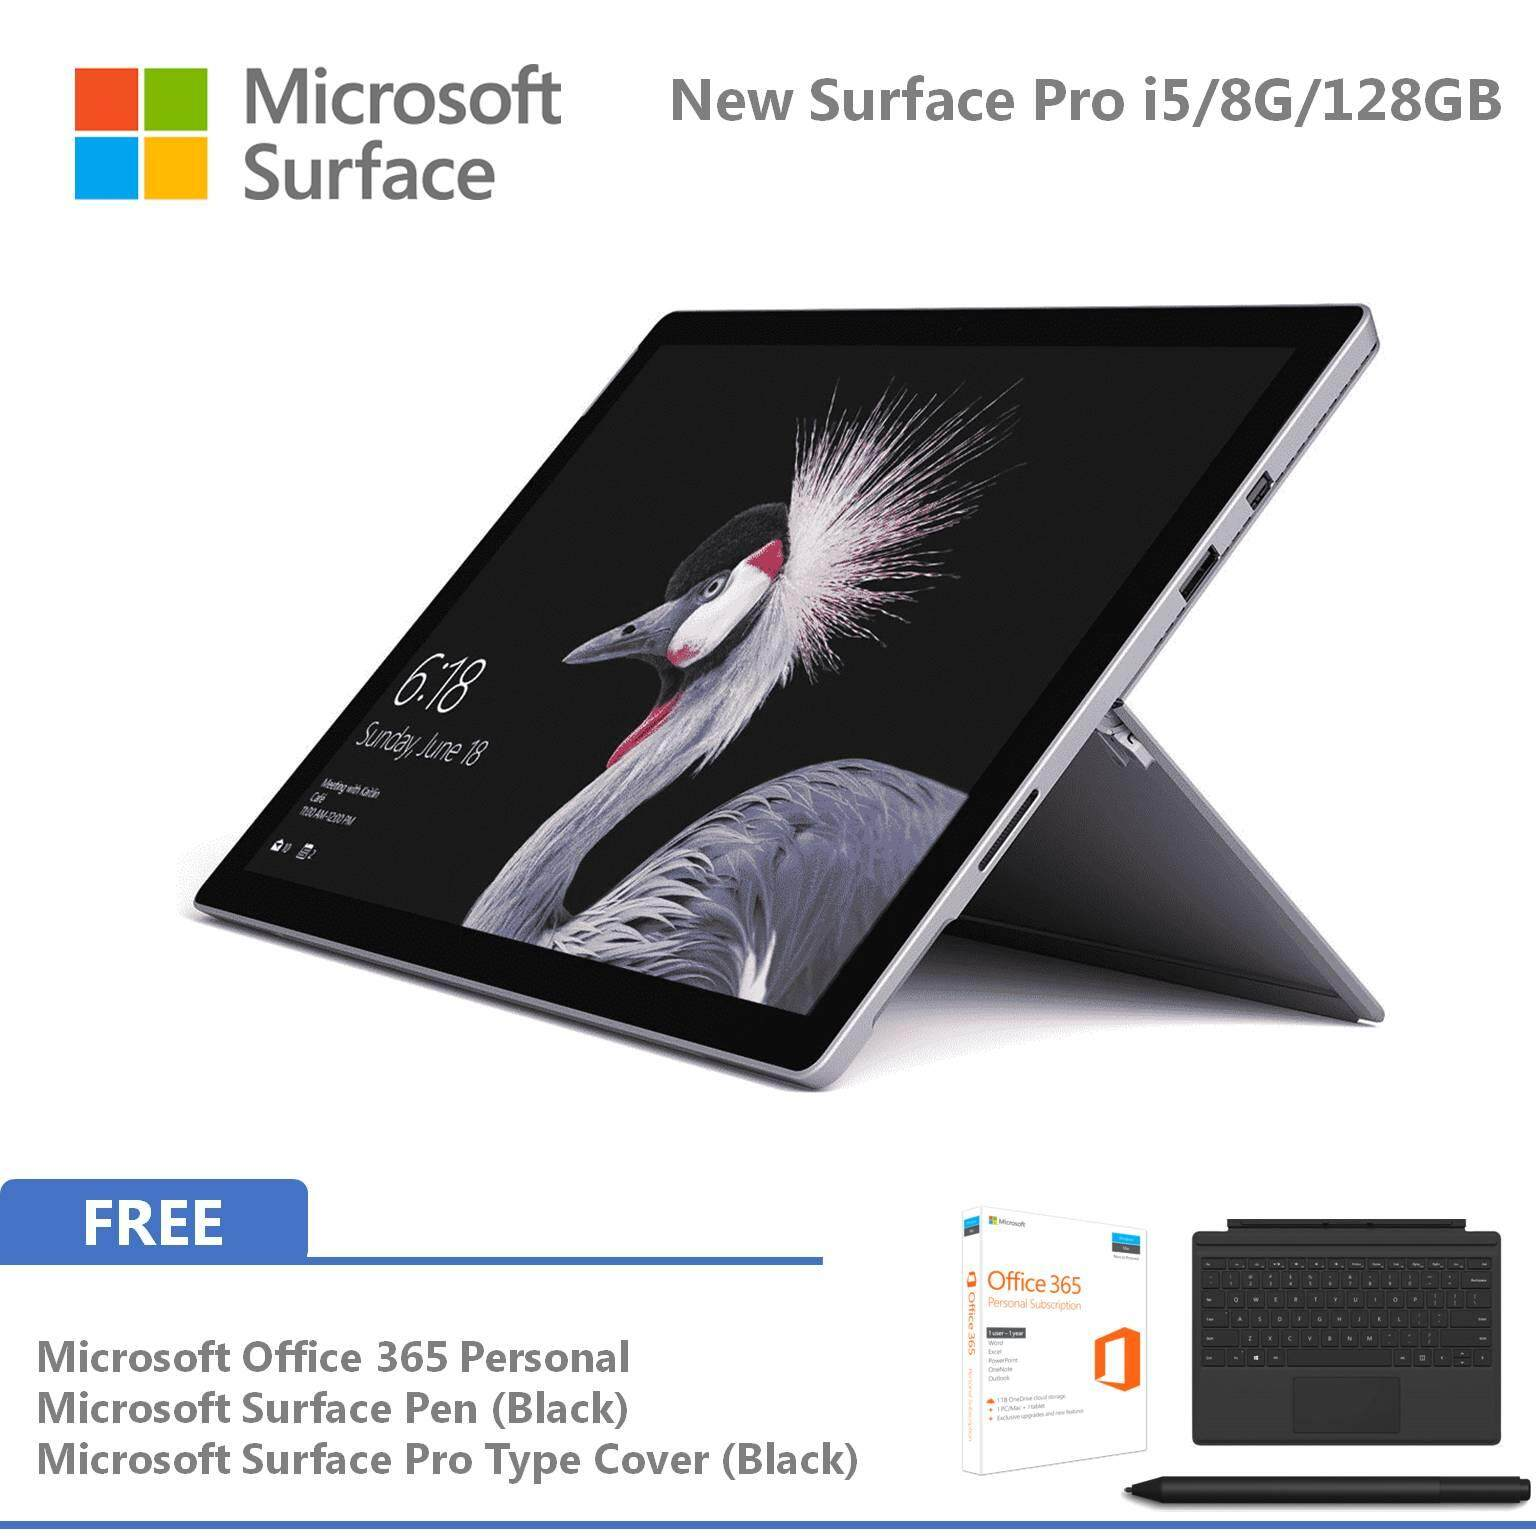 Microsoft New Surface Pro - 128GB / Intel Core i5 - 8GB RAM FOC Signature Type Cover + Pen + Office 365 Personal Malaysia